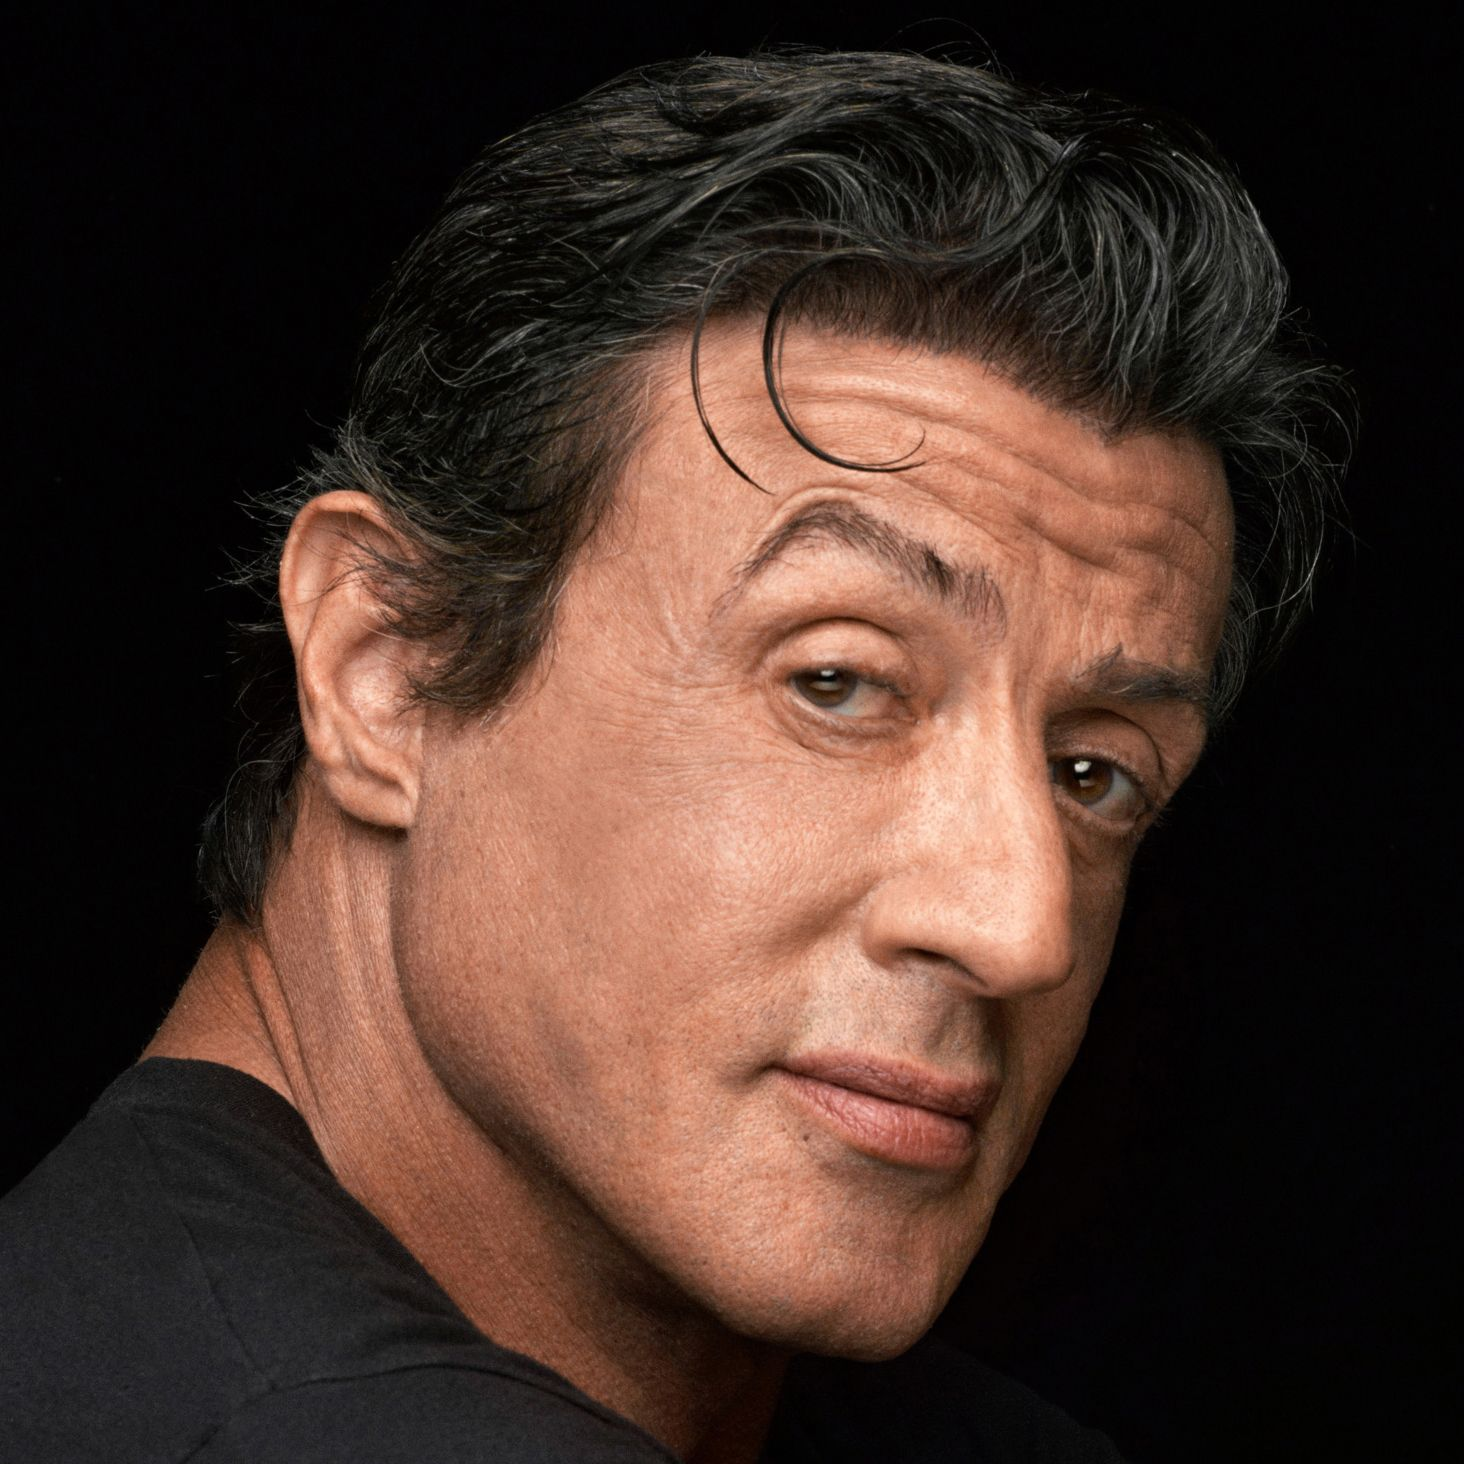 sylvester stallone heightsylvester stallone film, sylvester stallone 2016, sylvester stallone filmi, sylvester stallone 2017, sylvester stallone filmleri, sylvester stallone kino, sylvester stallone movies, sylvester stallone height, sylvester stallone biography, sylvester stallone mother, sylvester stallone family, sylvester stallone filme, sylvester stallone wife, sylvester stallone cobra, sylvester stallone died, sylvester stallone 2016 film, sylvester stallone son, sylvester stallone wikipedia, sylvester stallone rocky, sylvester stallone's daughters